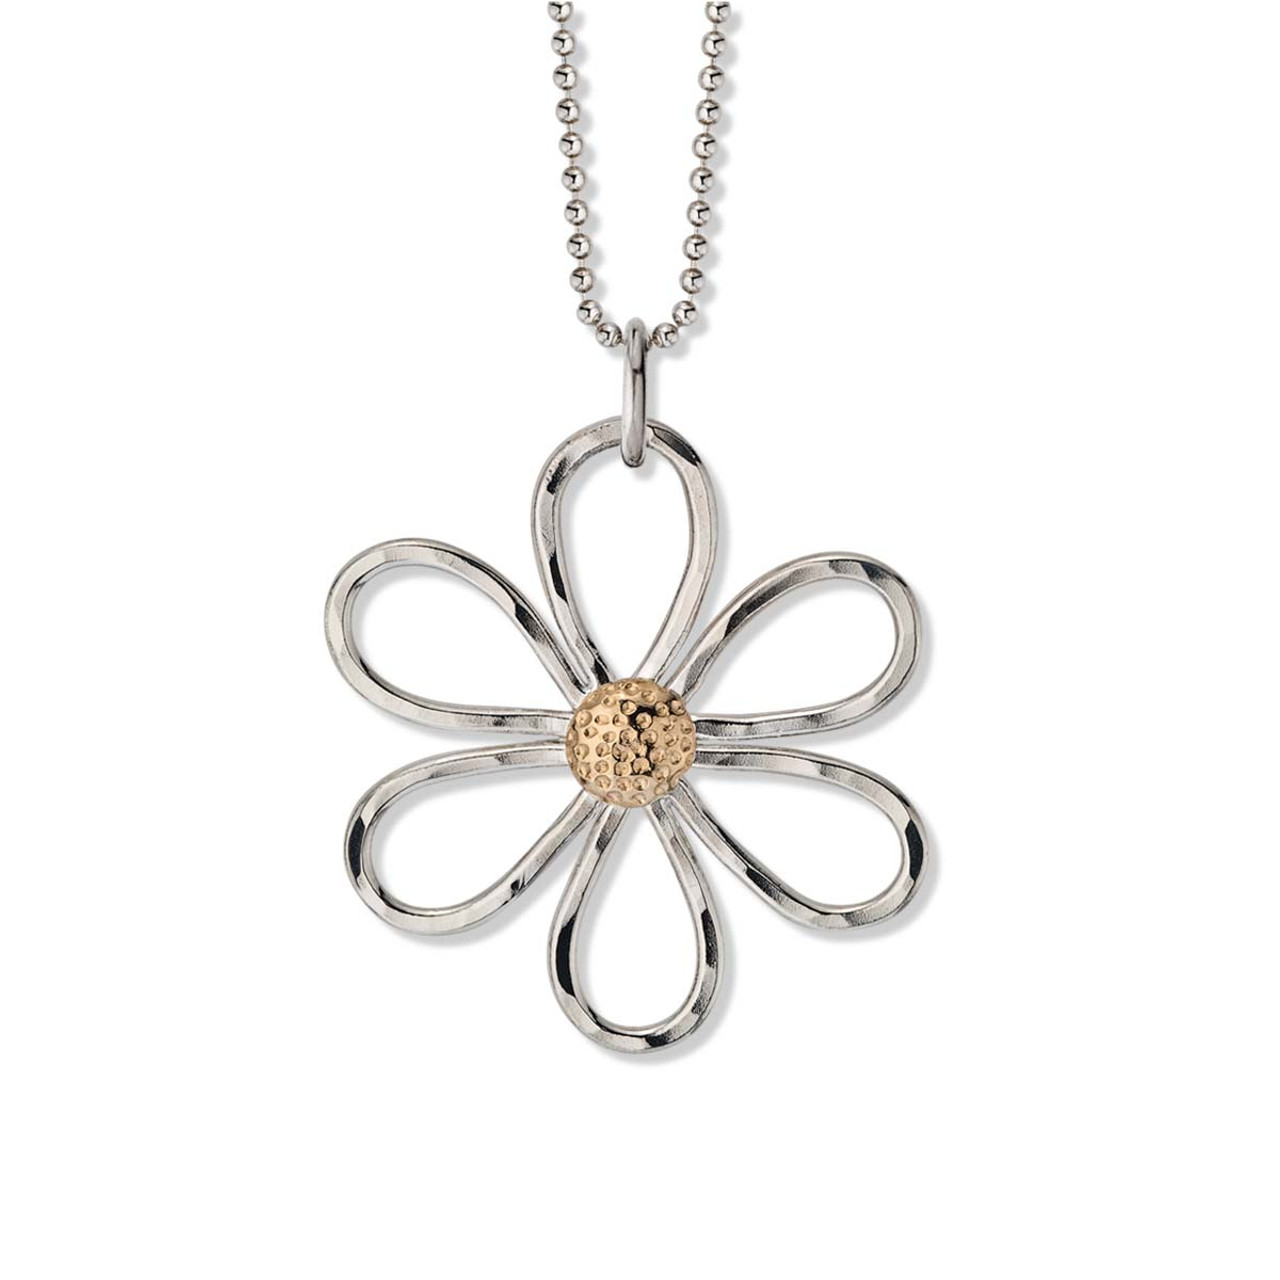 daisynecklace pretty flower necklaceaddiebeads daisy shop pendants necklace pendant